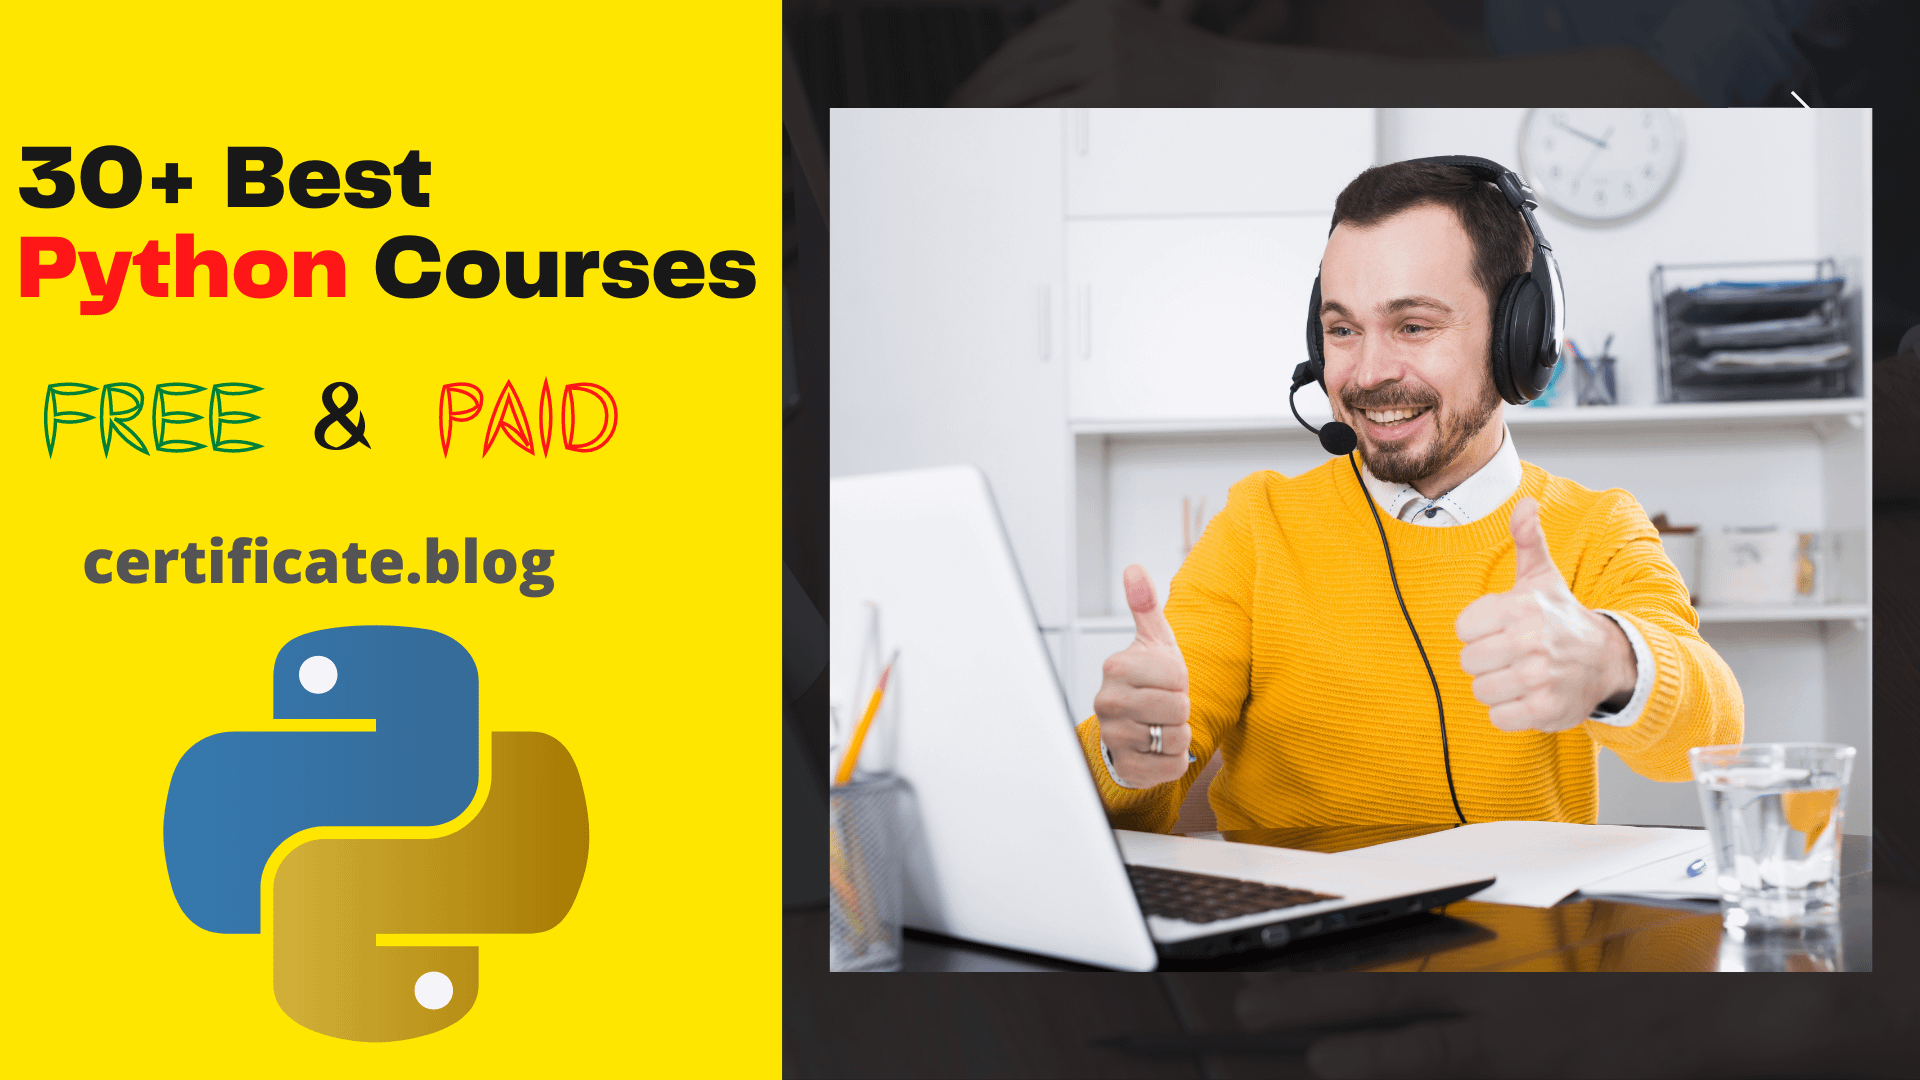 30+ Best Python Courses Free & Paid 2021